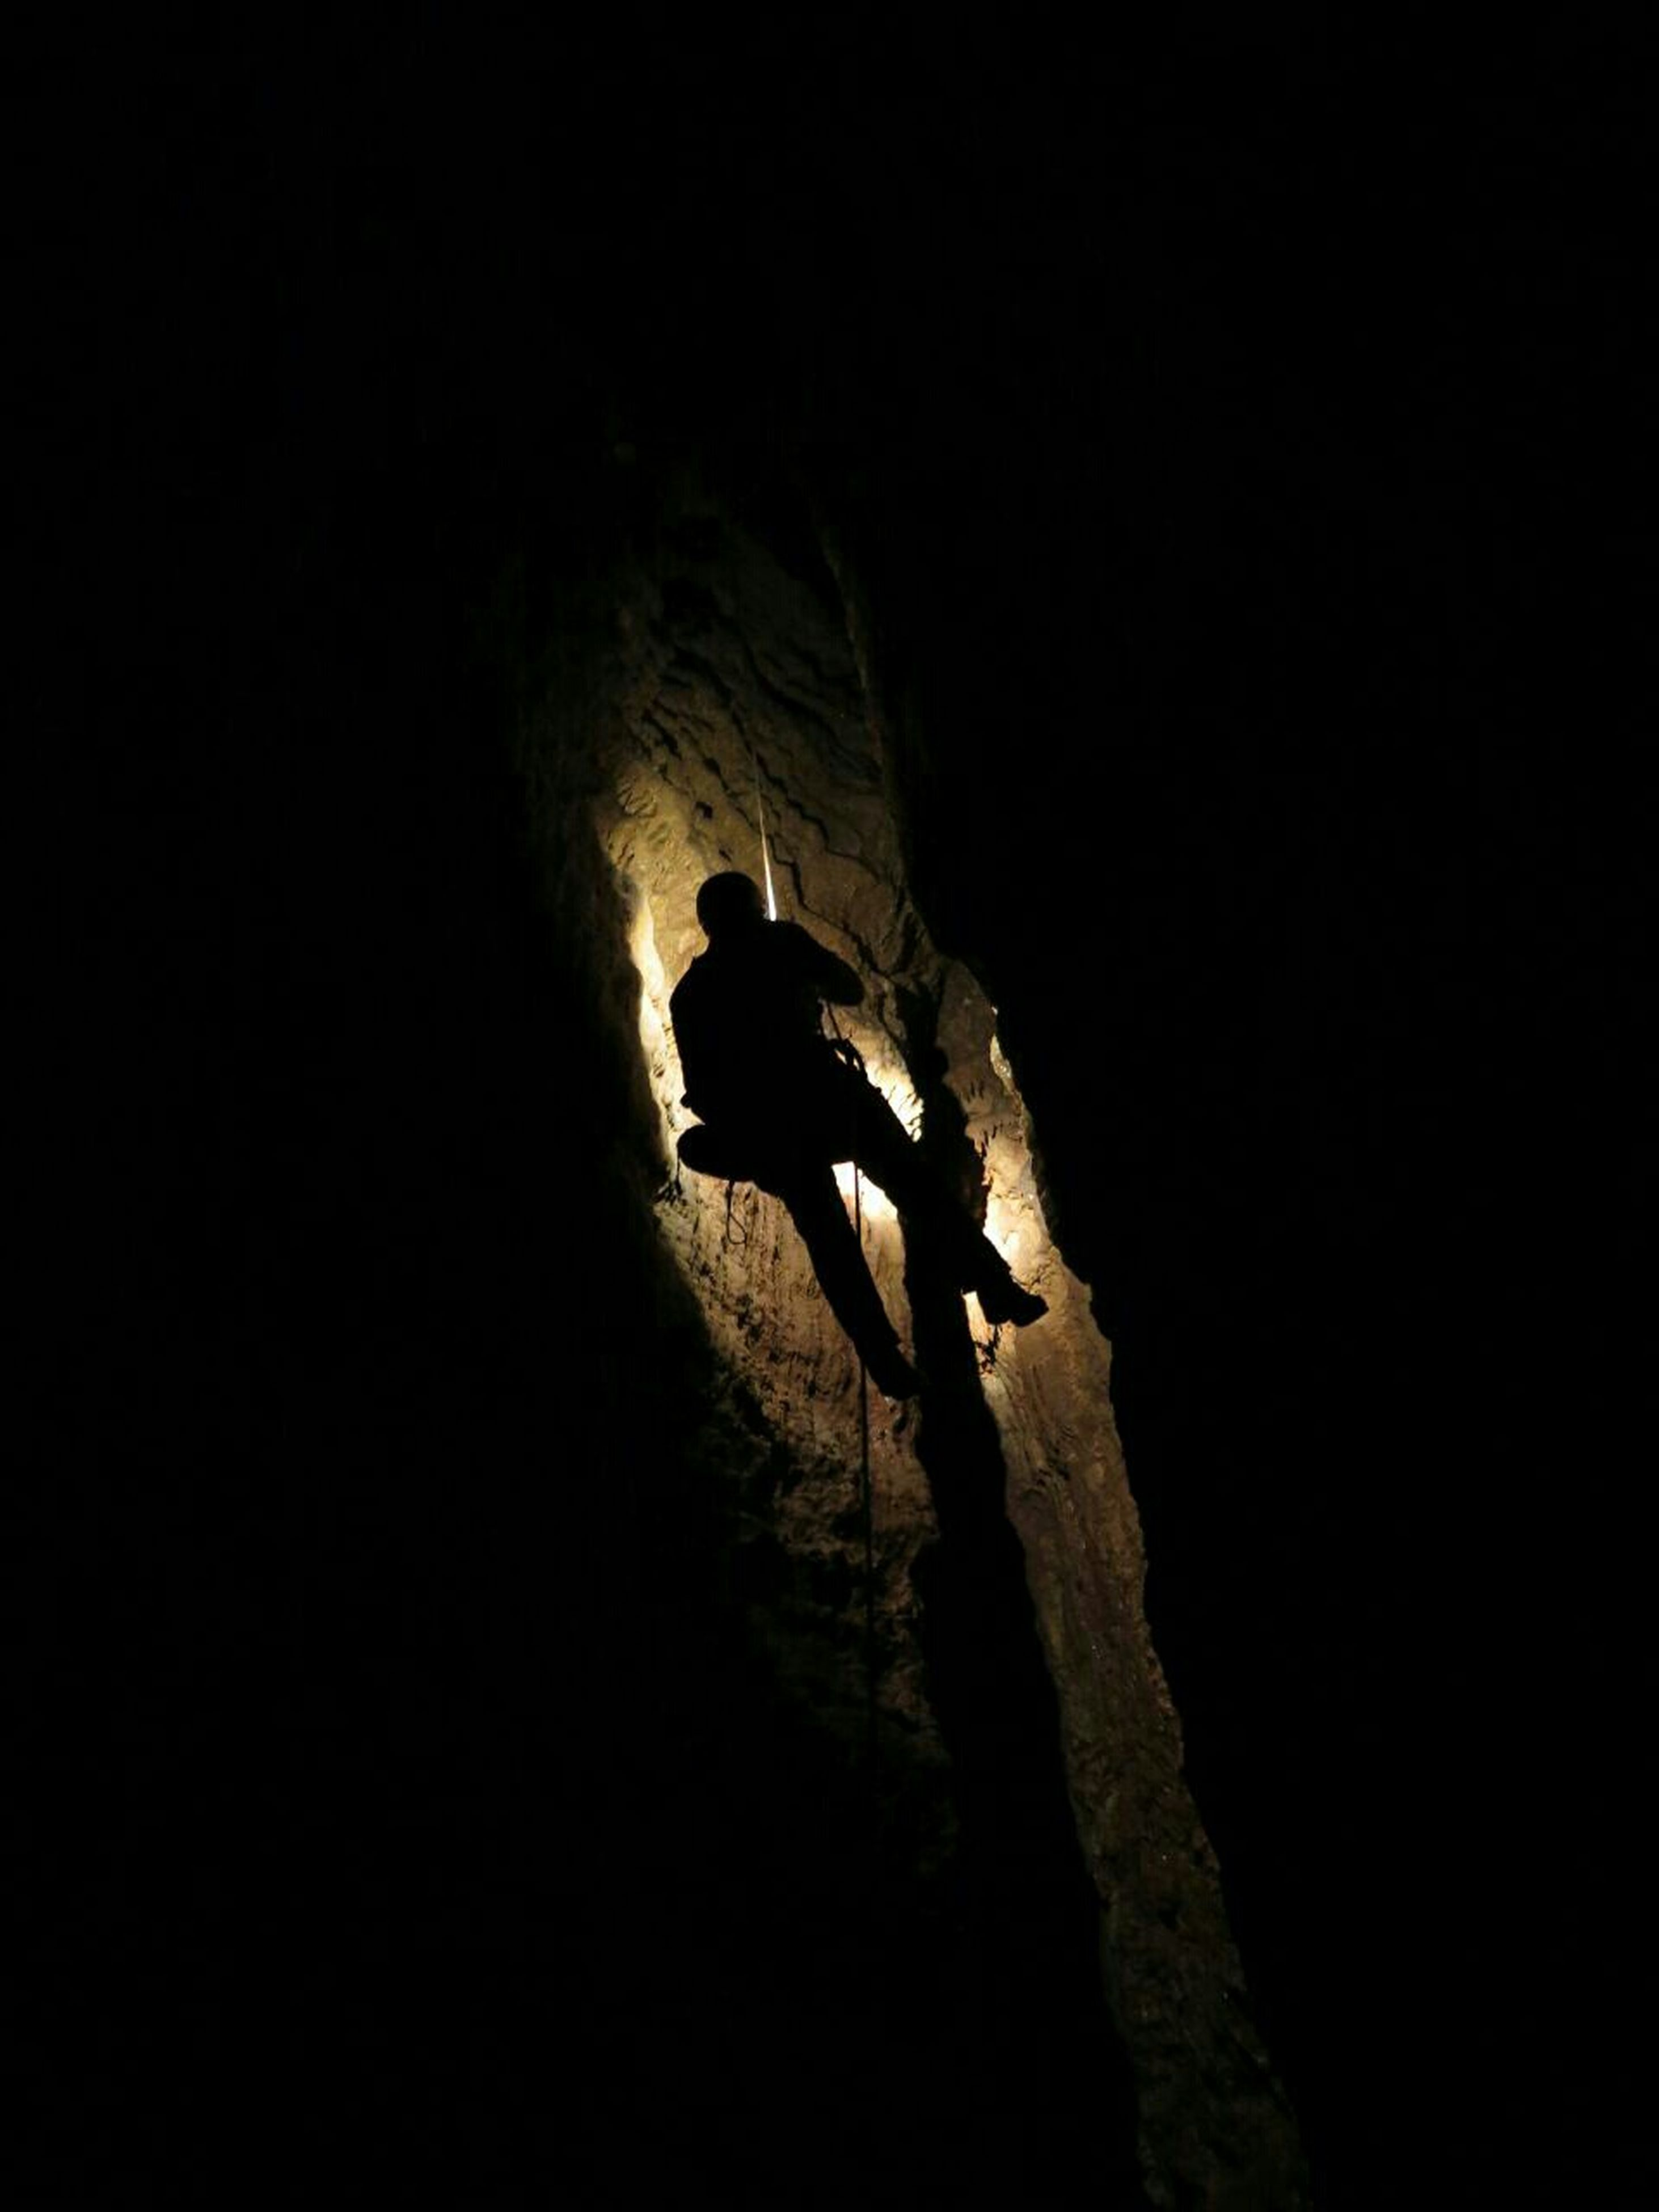 silhouette, lifestyles, men, leisure activity, full length, unrecognizable person, adventure, extreme sports, high angle view, rock - object, standing, low angle view, exploration, copy space, outdoors, night, person